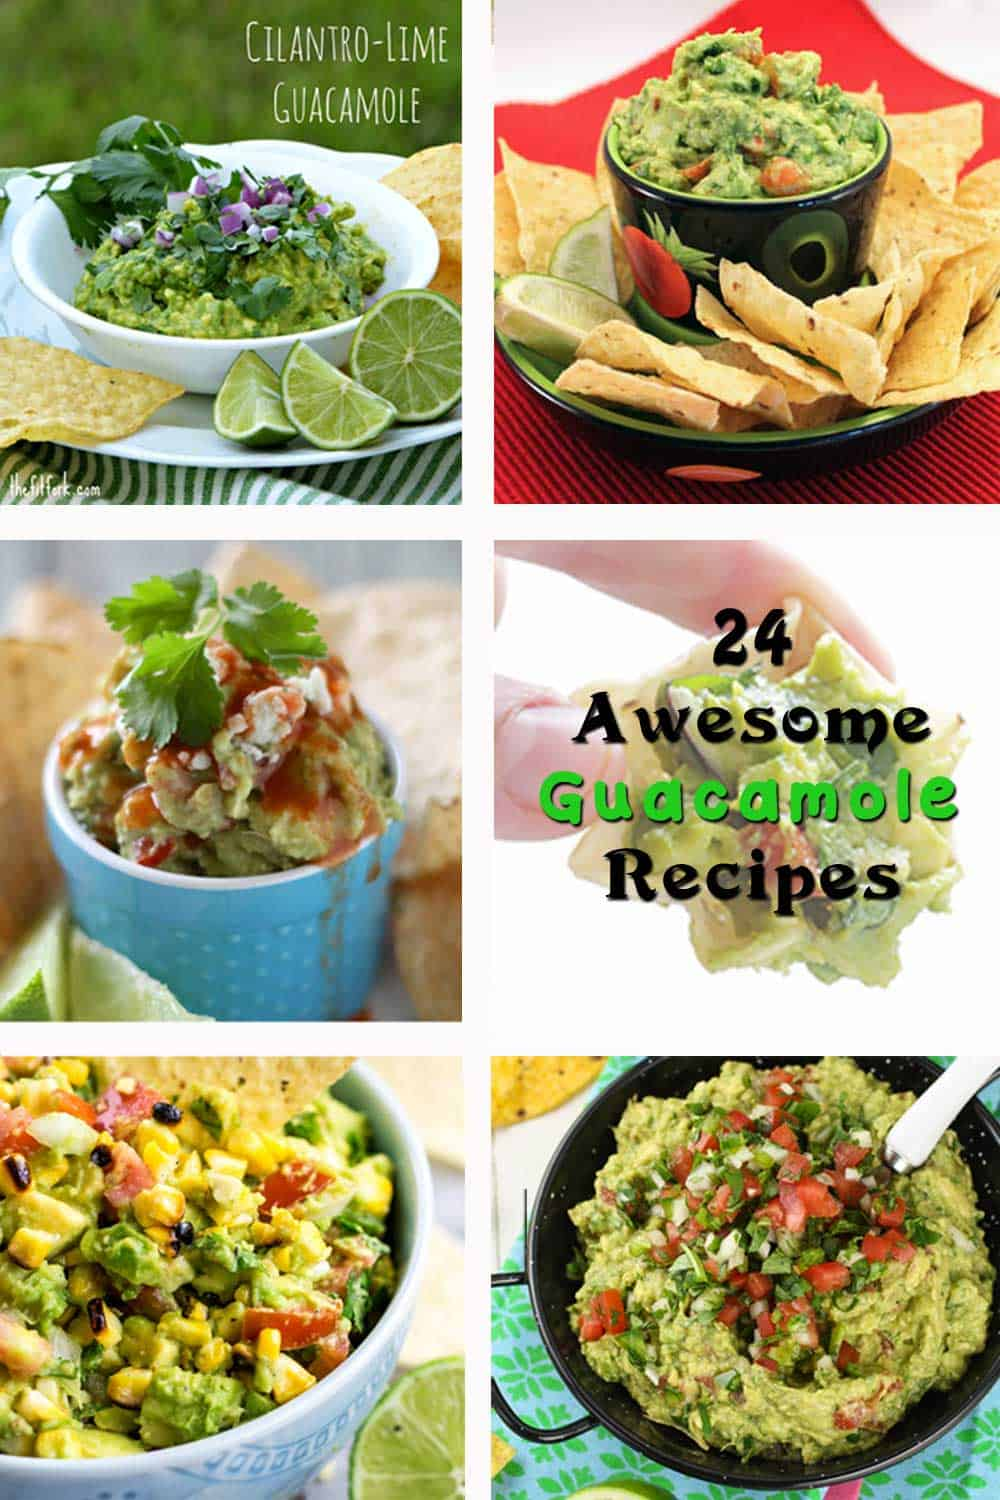 Guacamole Roundup | 2 Cookin Mamas A roundup of 24 awesome guacamole recipes from our favorite bloggers. Everything from grilled to goat cheese to garlic. There is sure to be one you'll love!